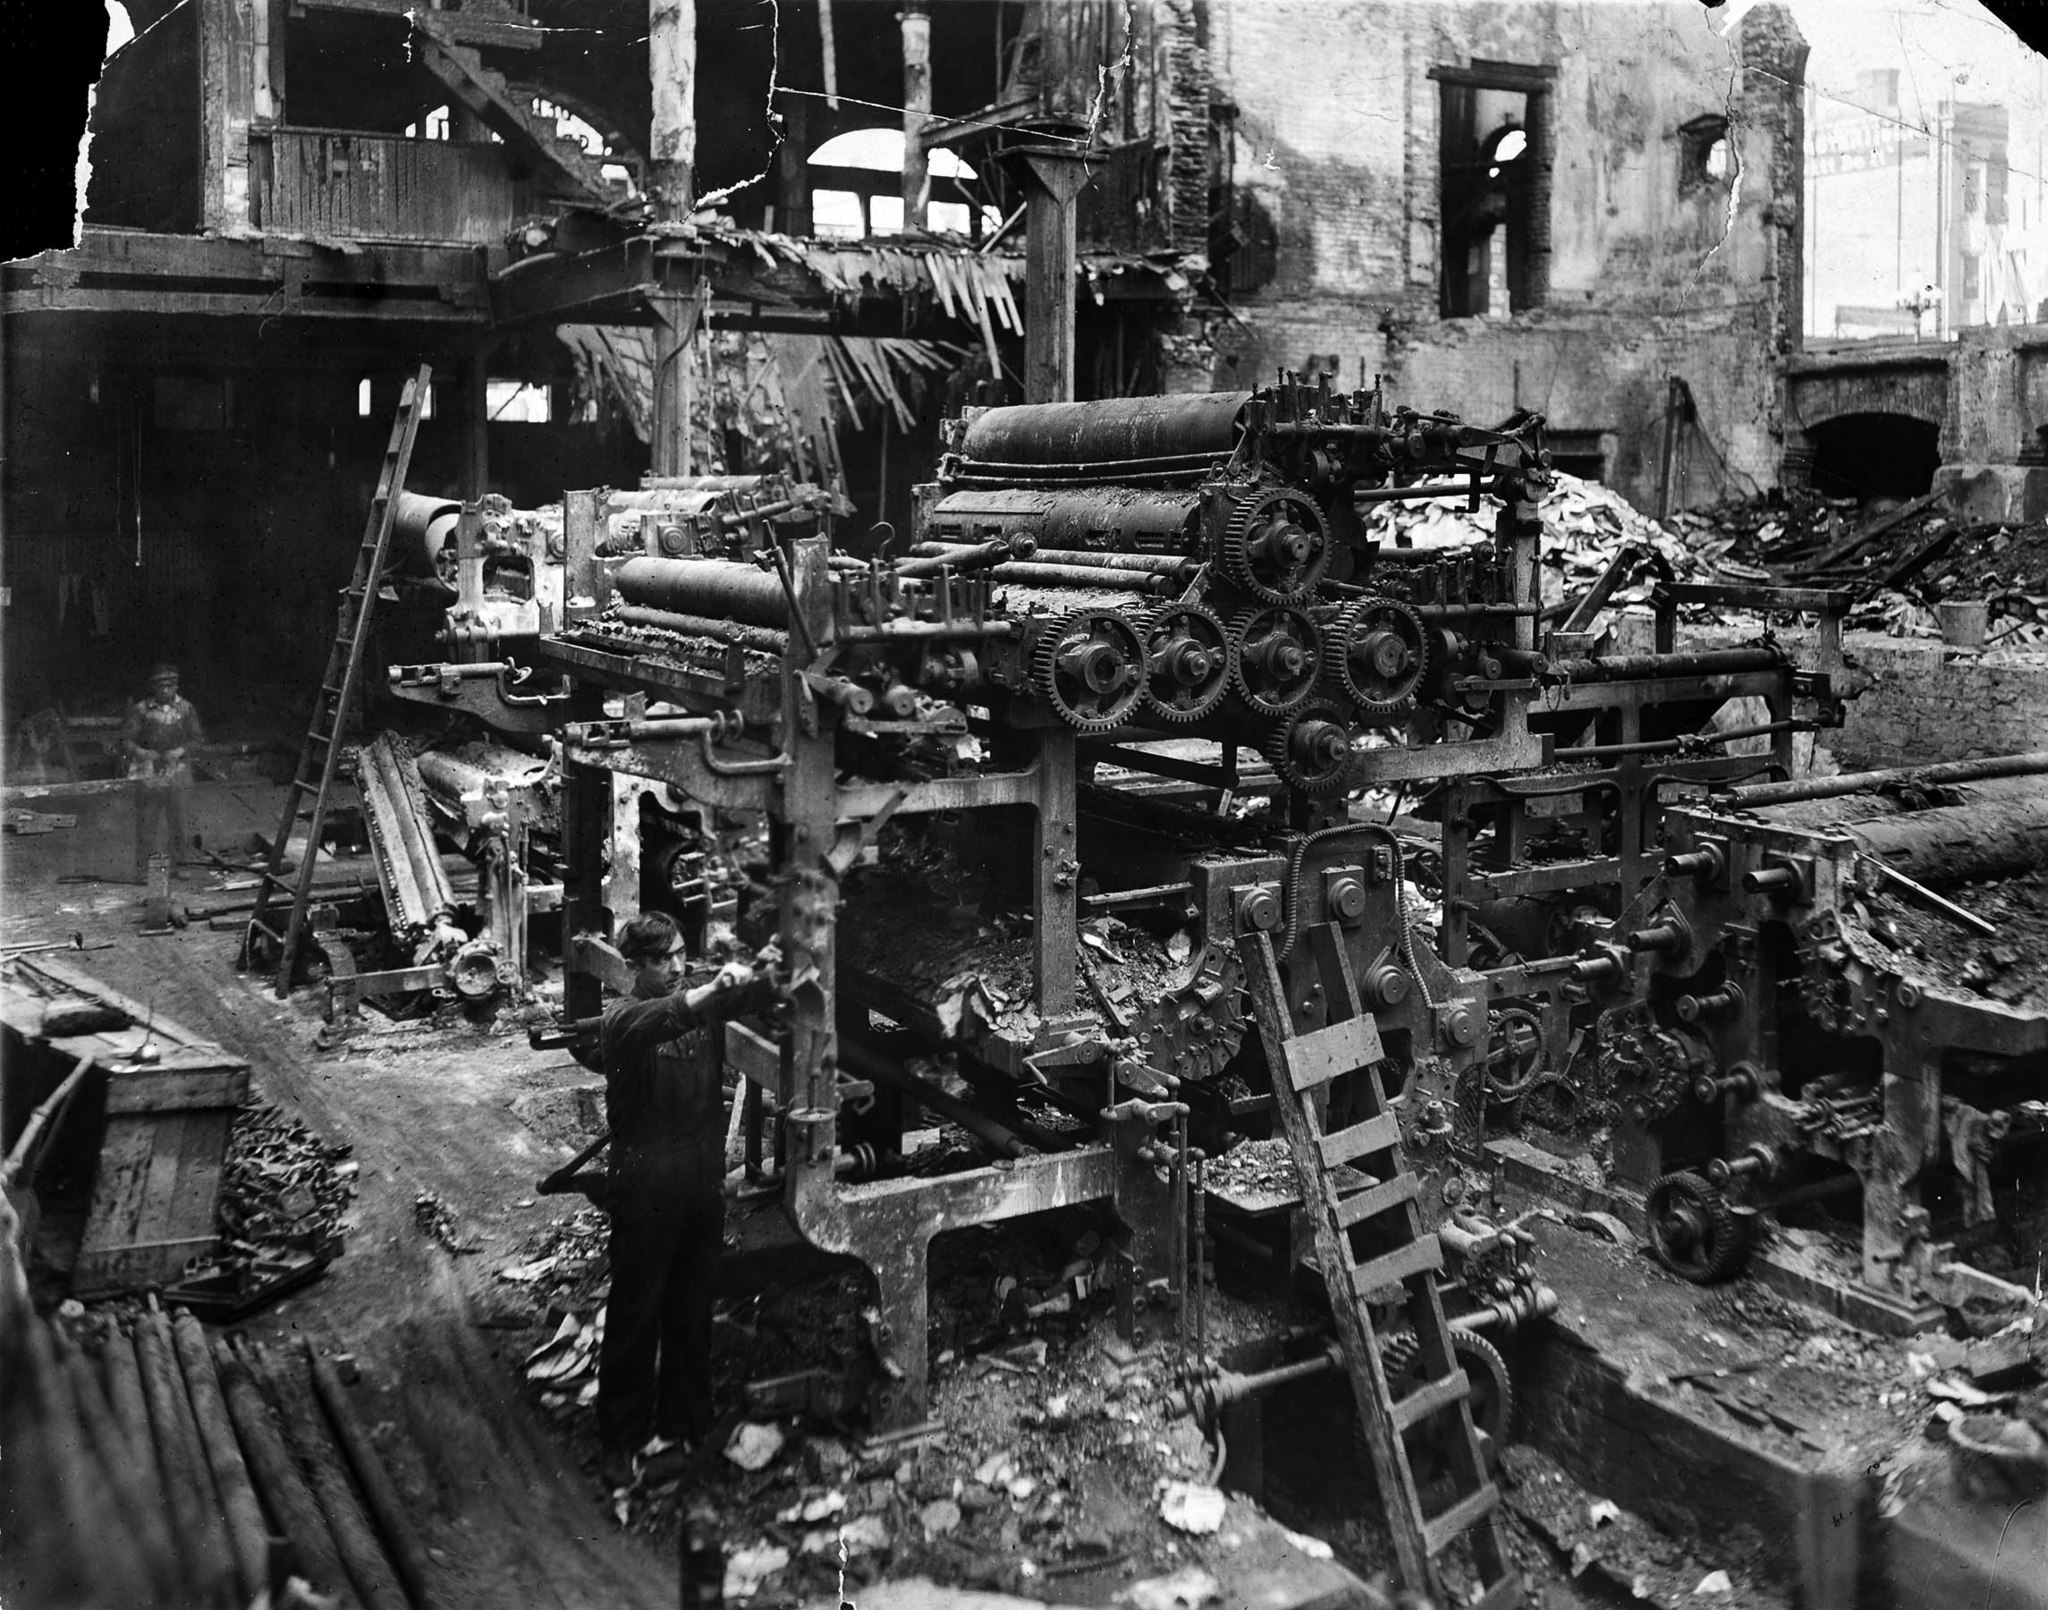 The burned-out press room following the bombing of the Los Angeles Times on Oct. 1, 1910. October 19